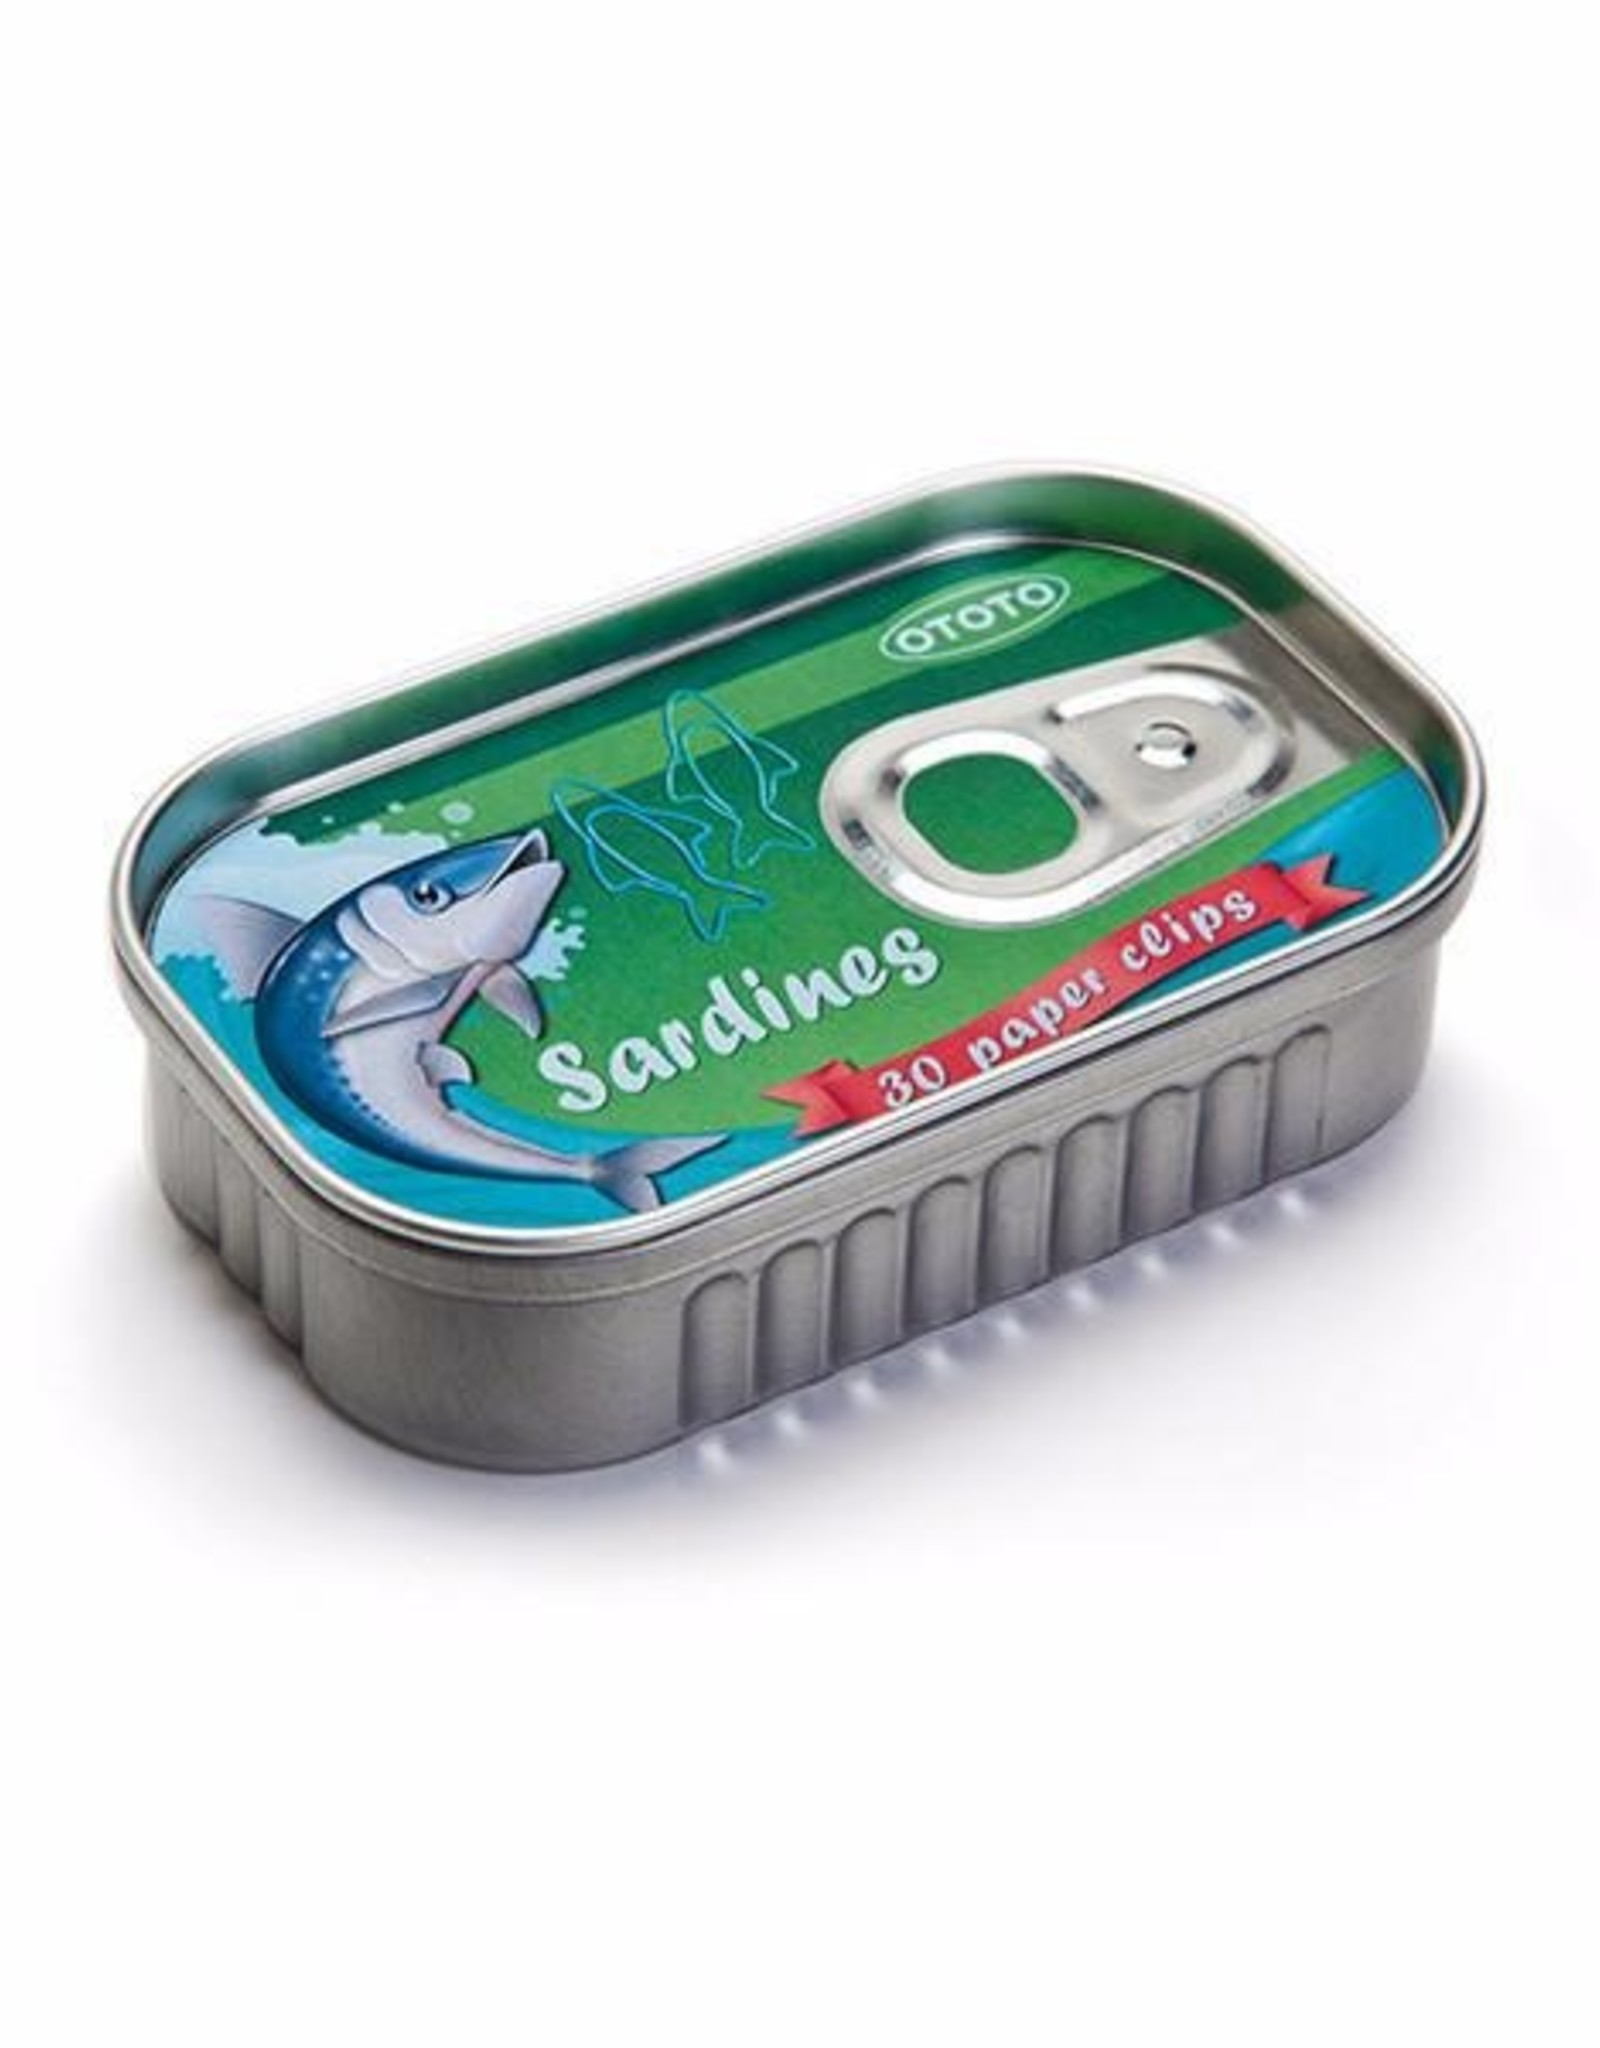 Sardine Can Paperclips